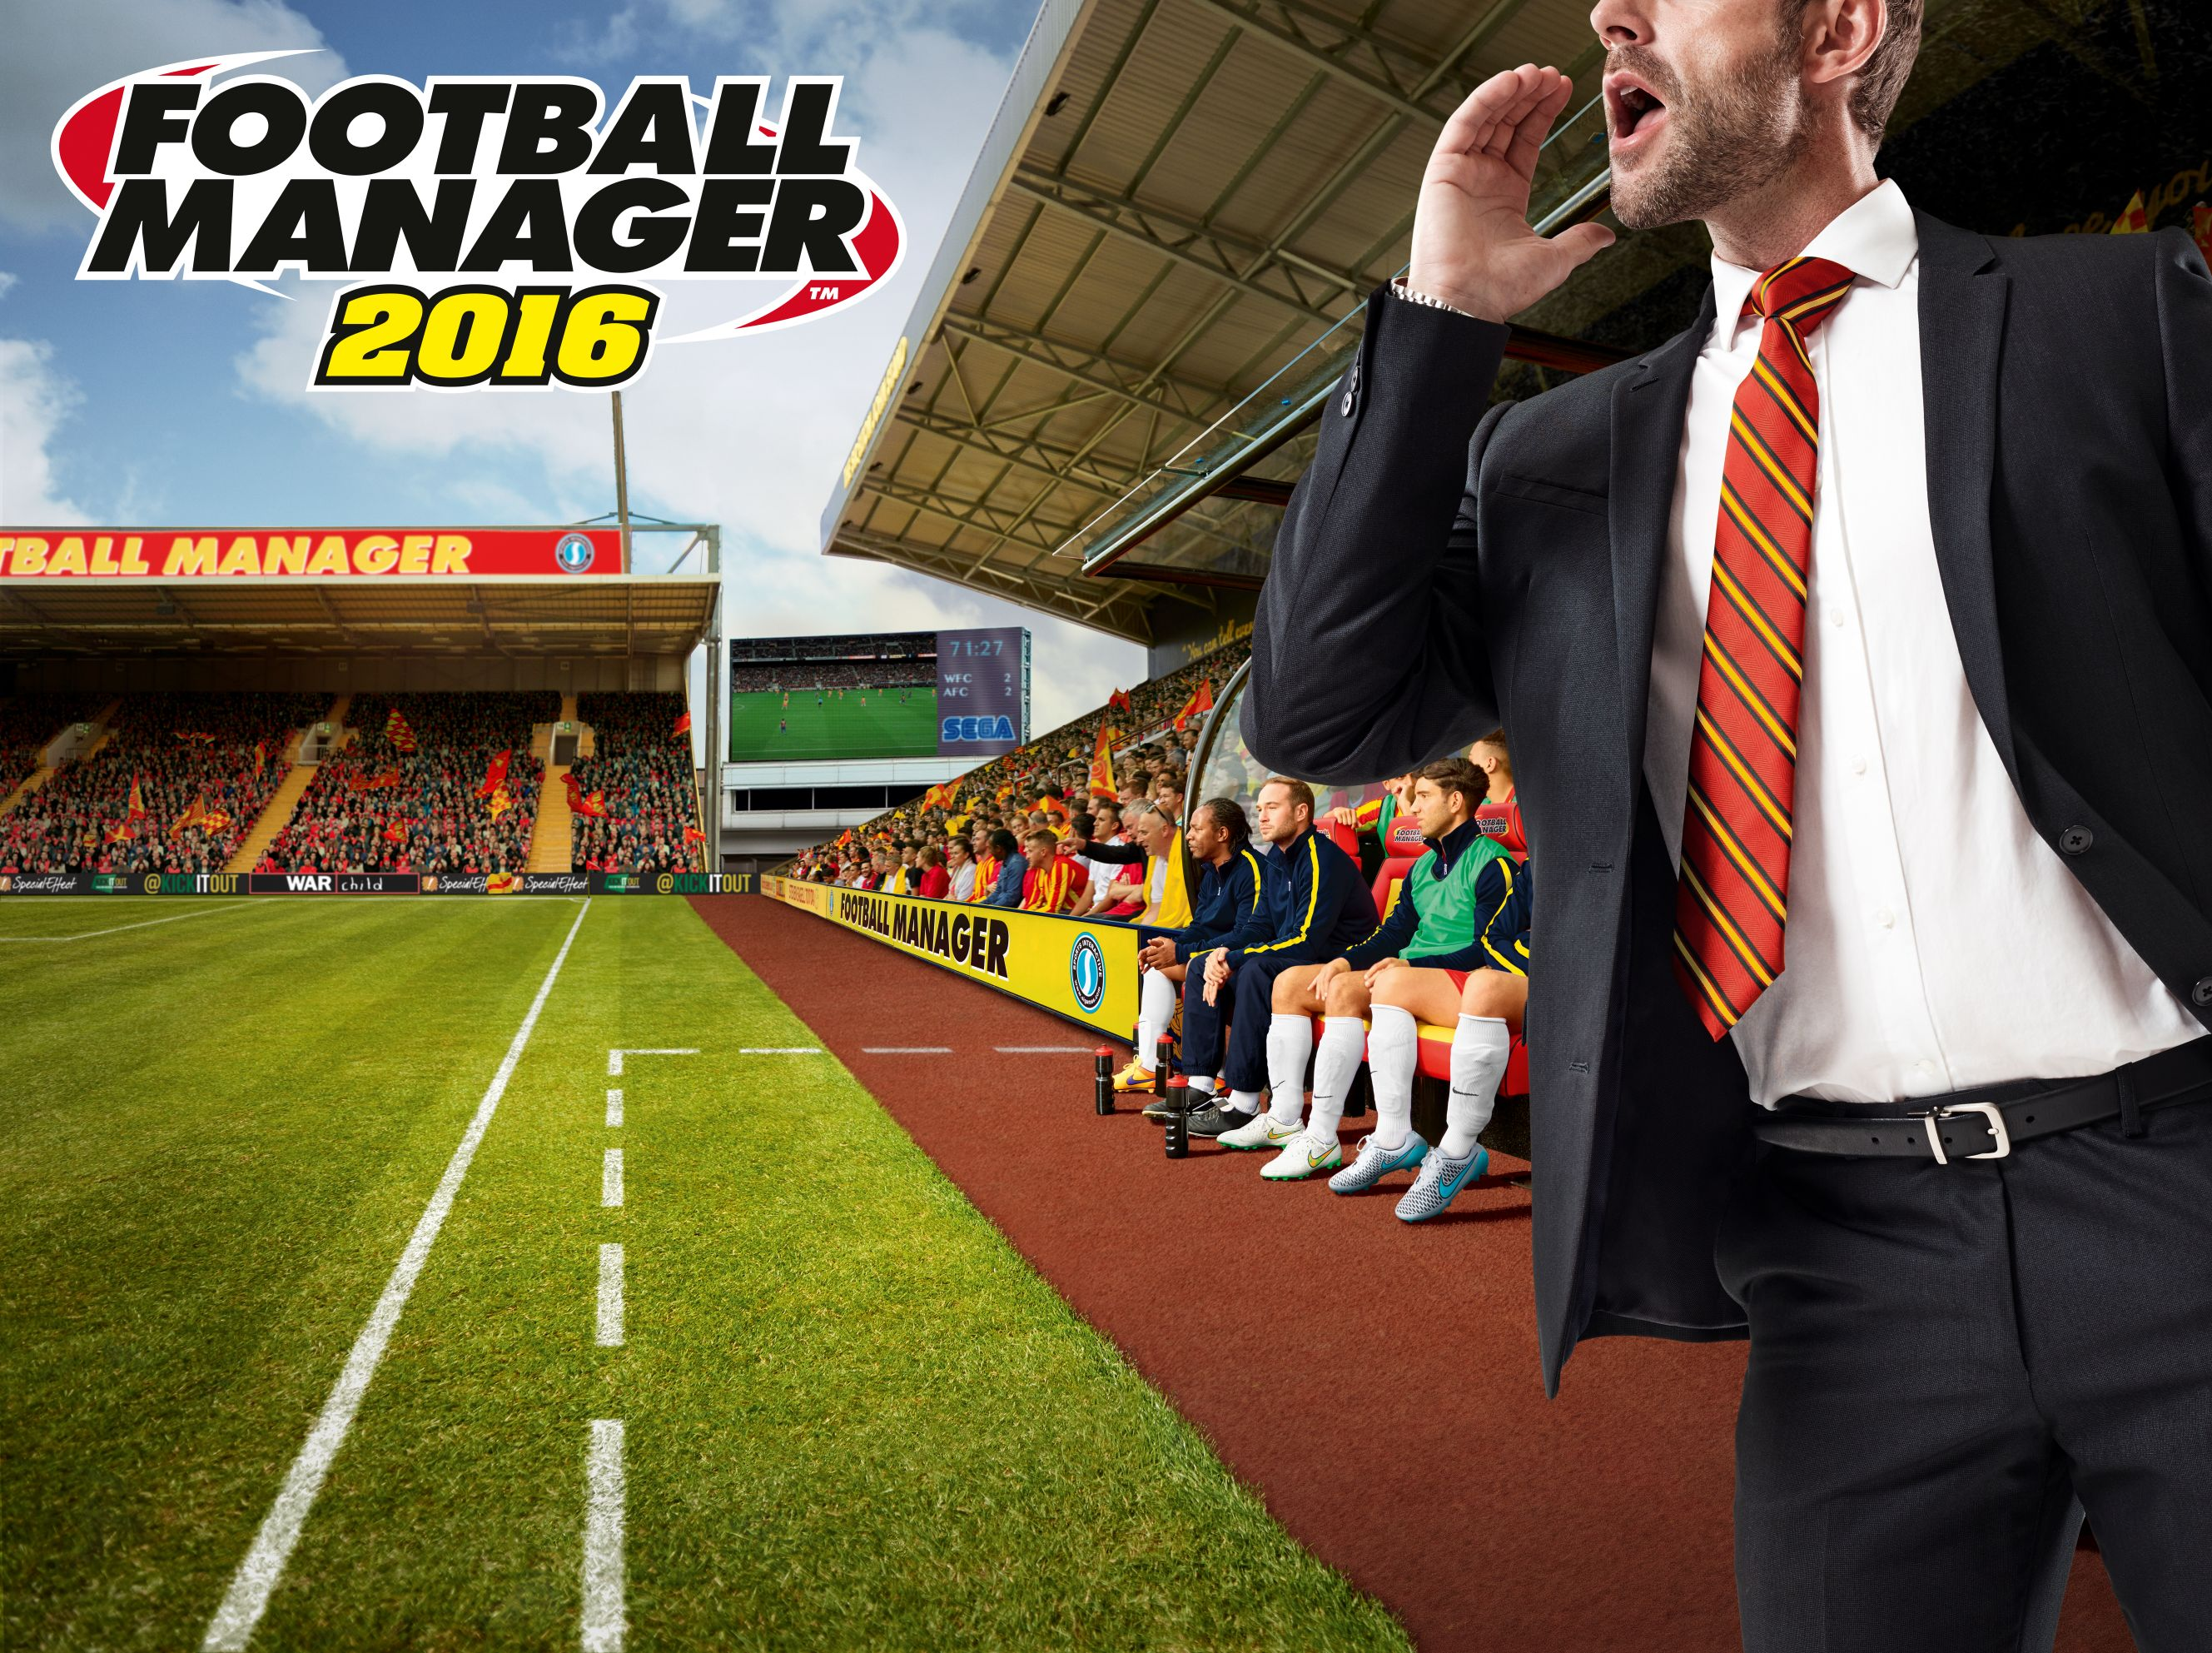 Football Manager 2016 review – match replay